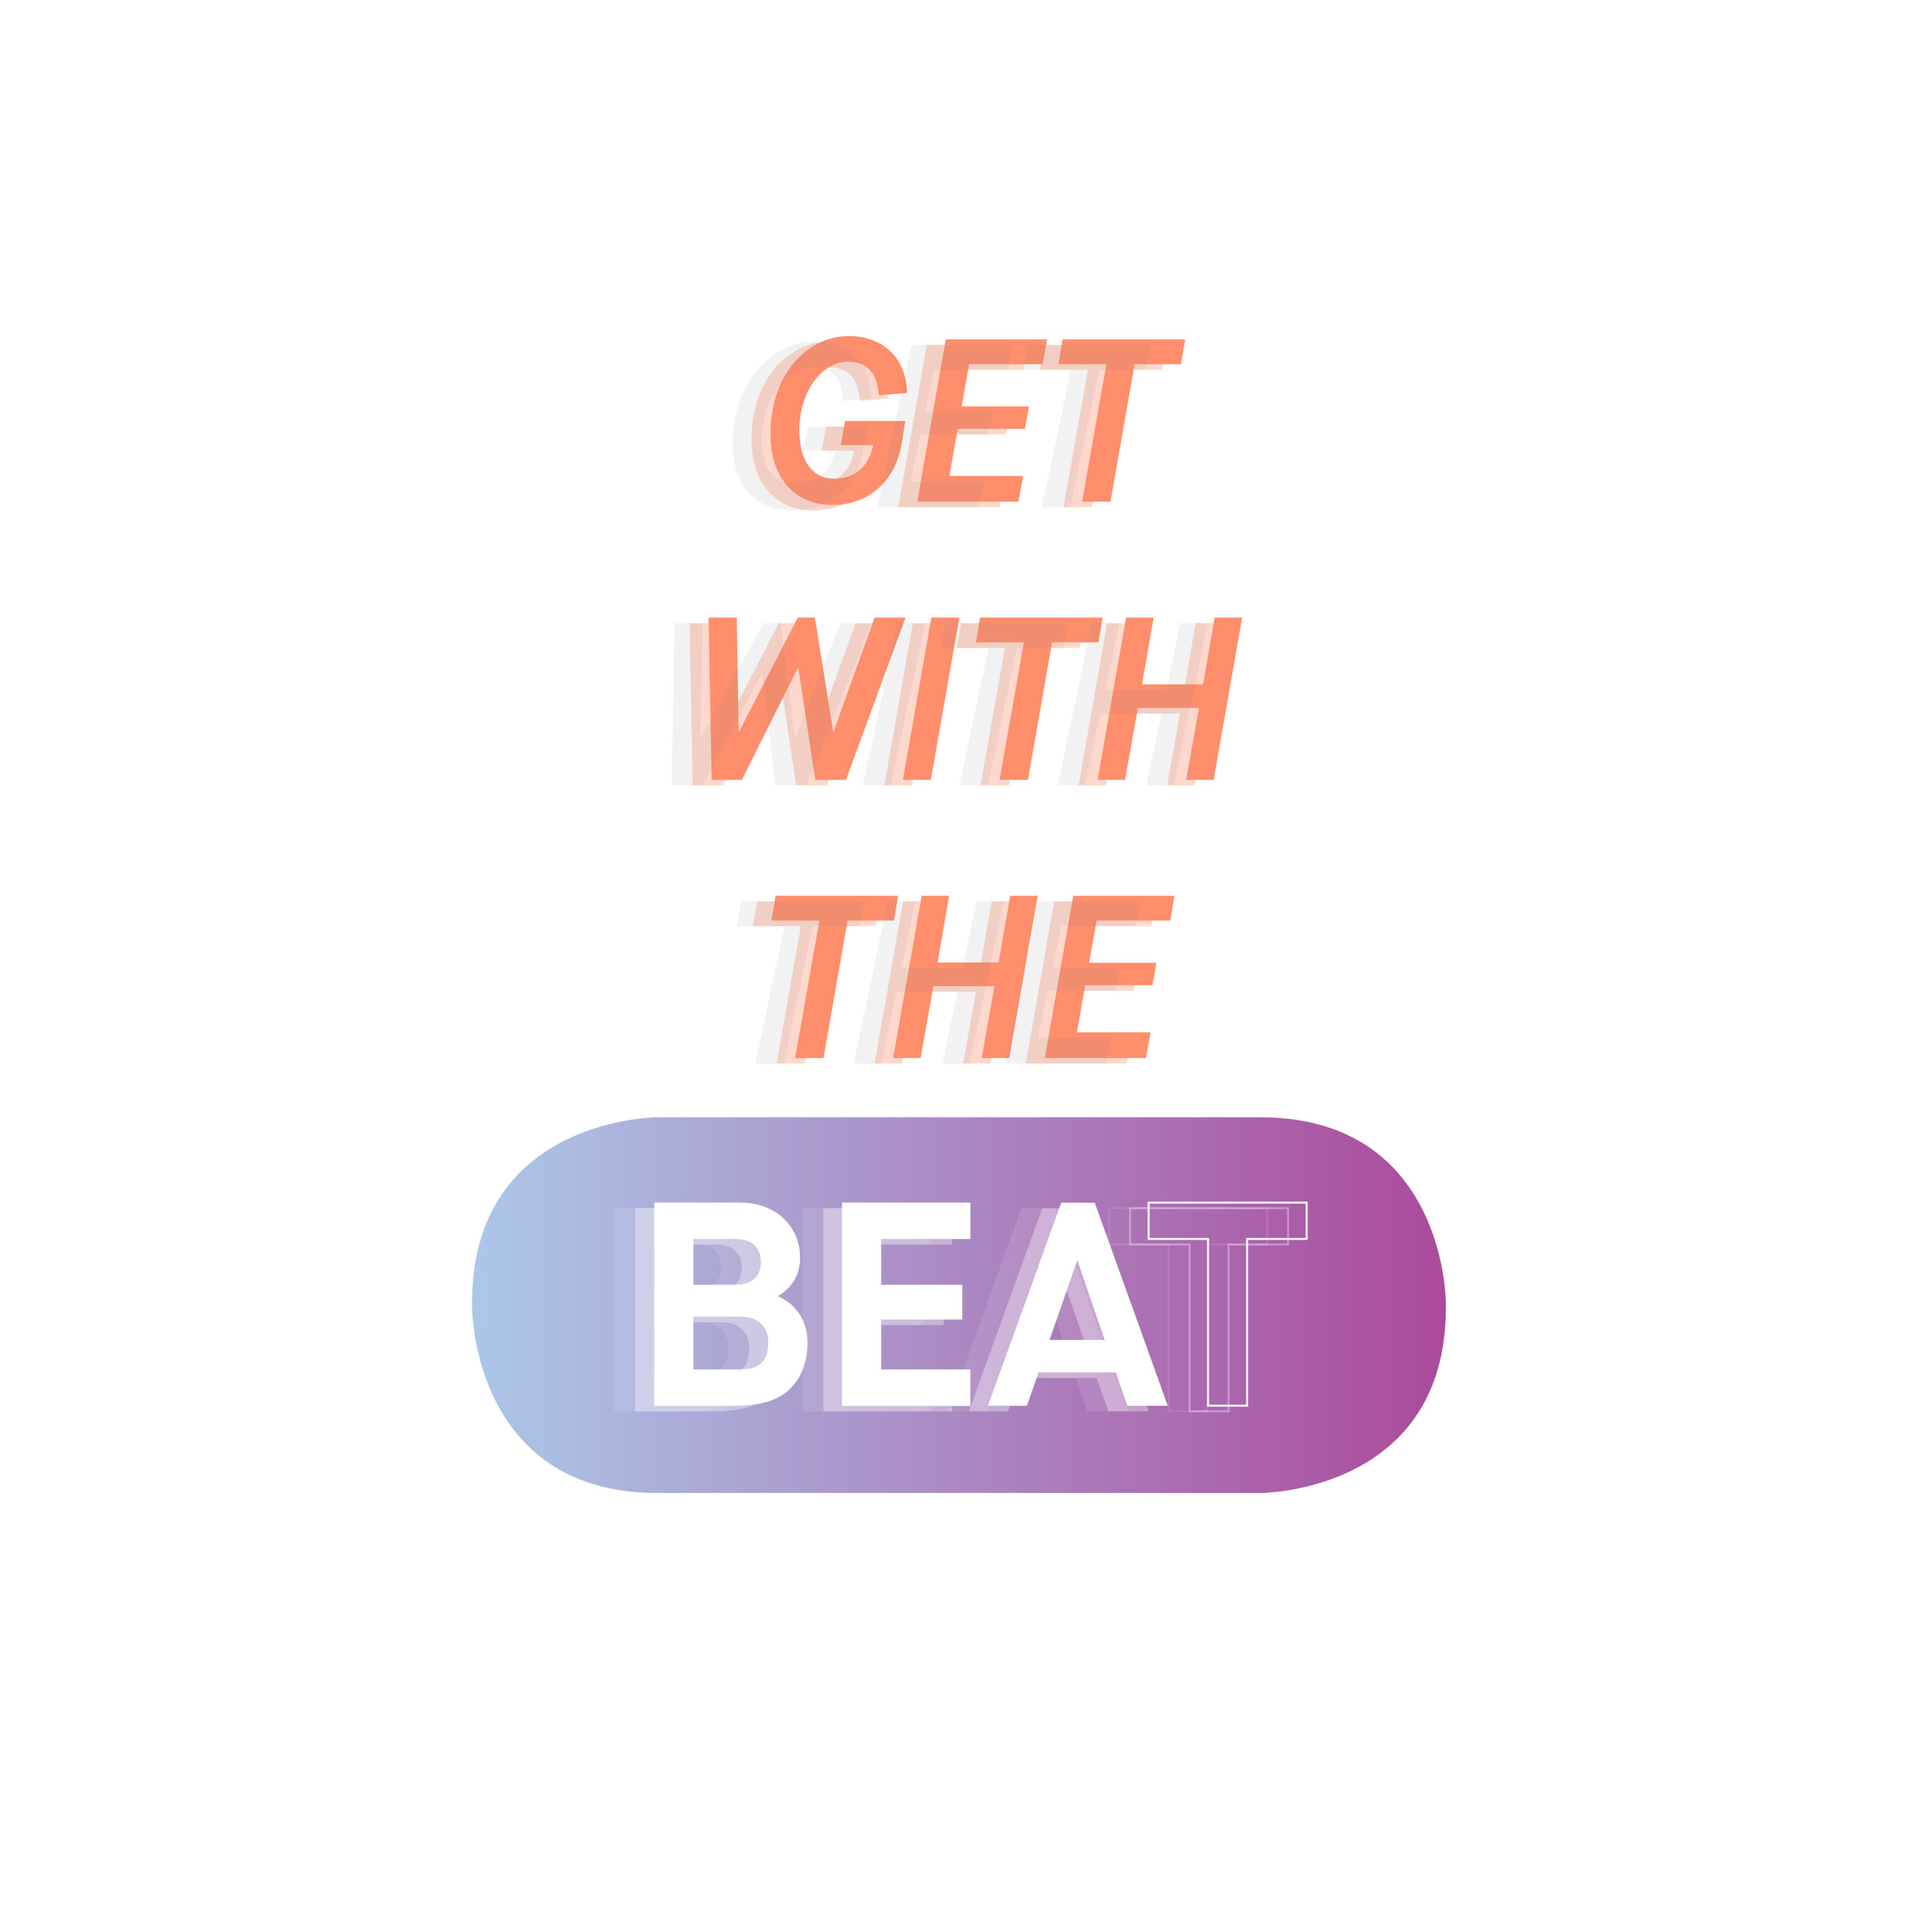 and volunteer with us!  - We are looking to fill three volunteer positions with BEAT.